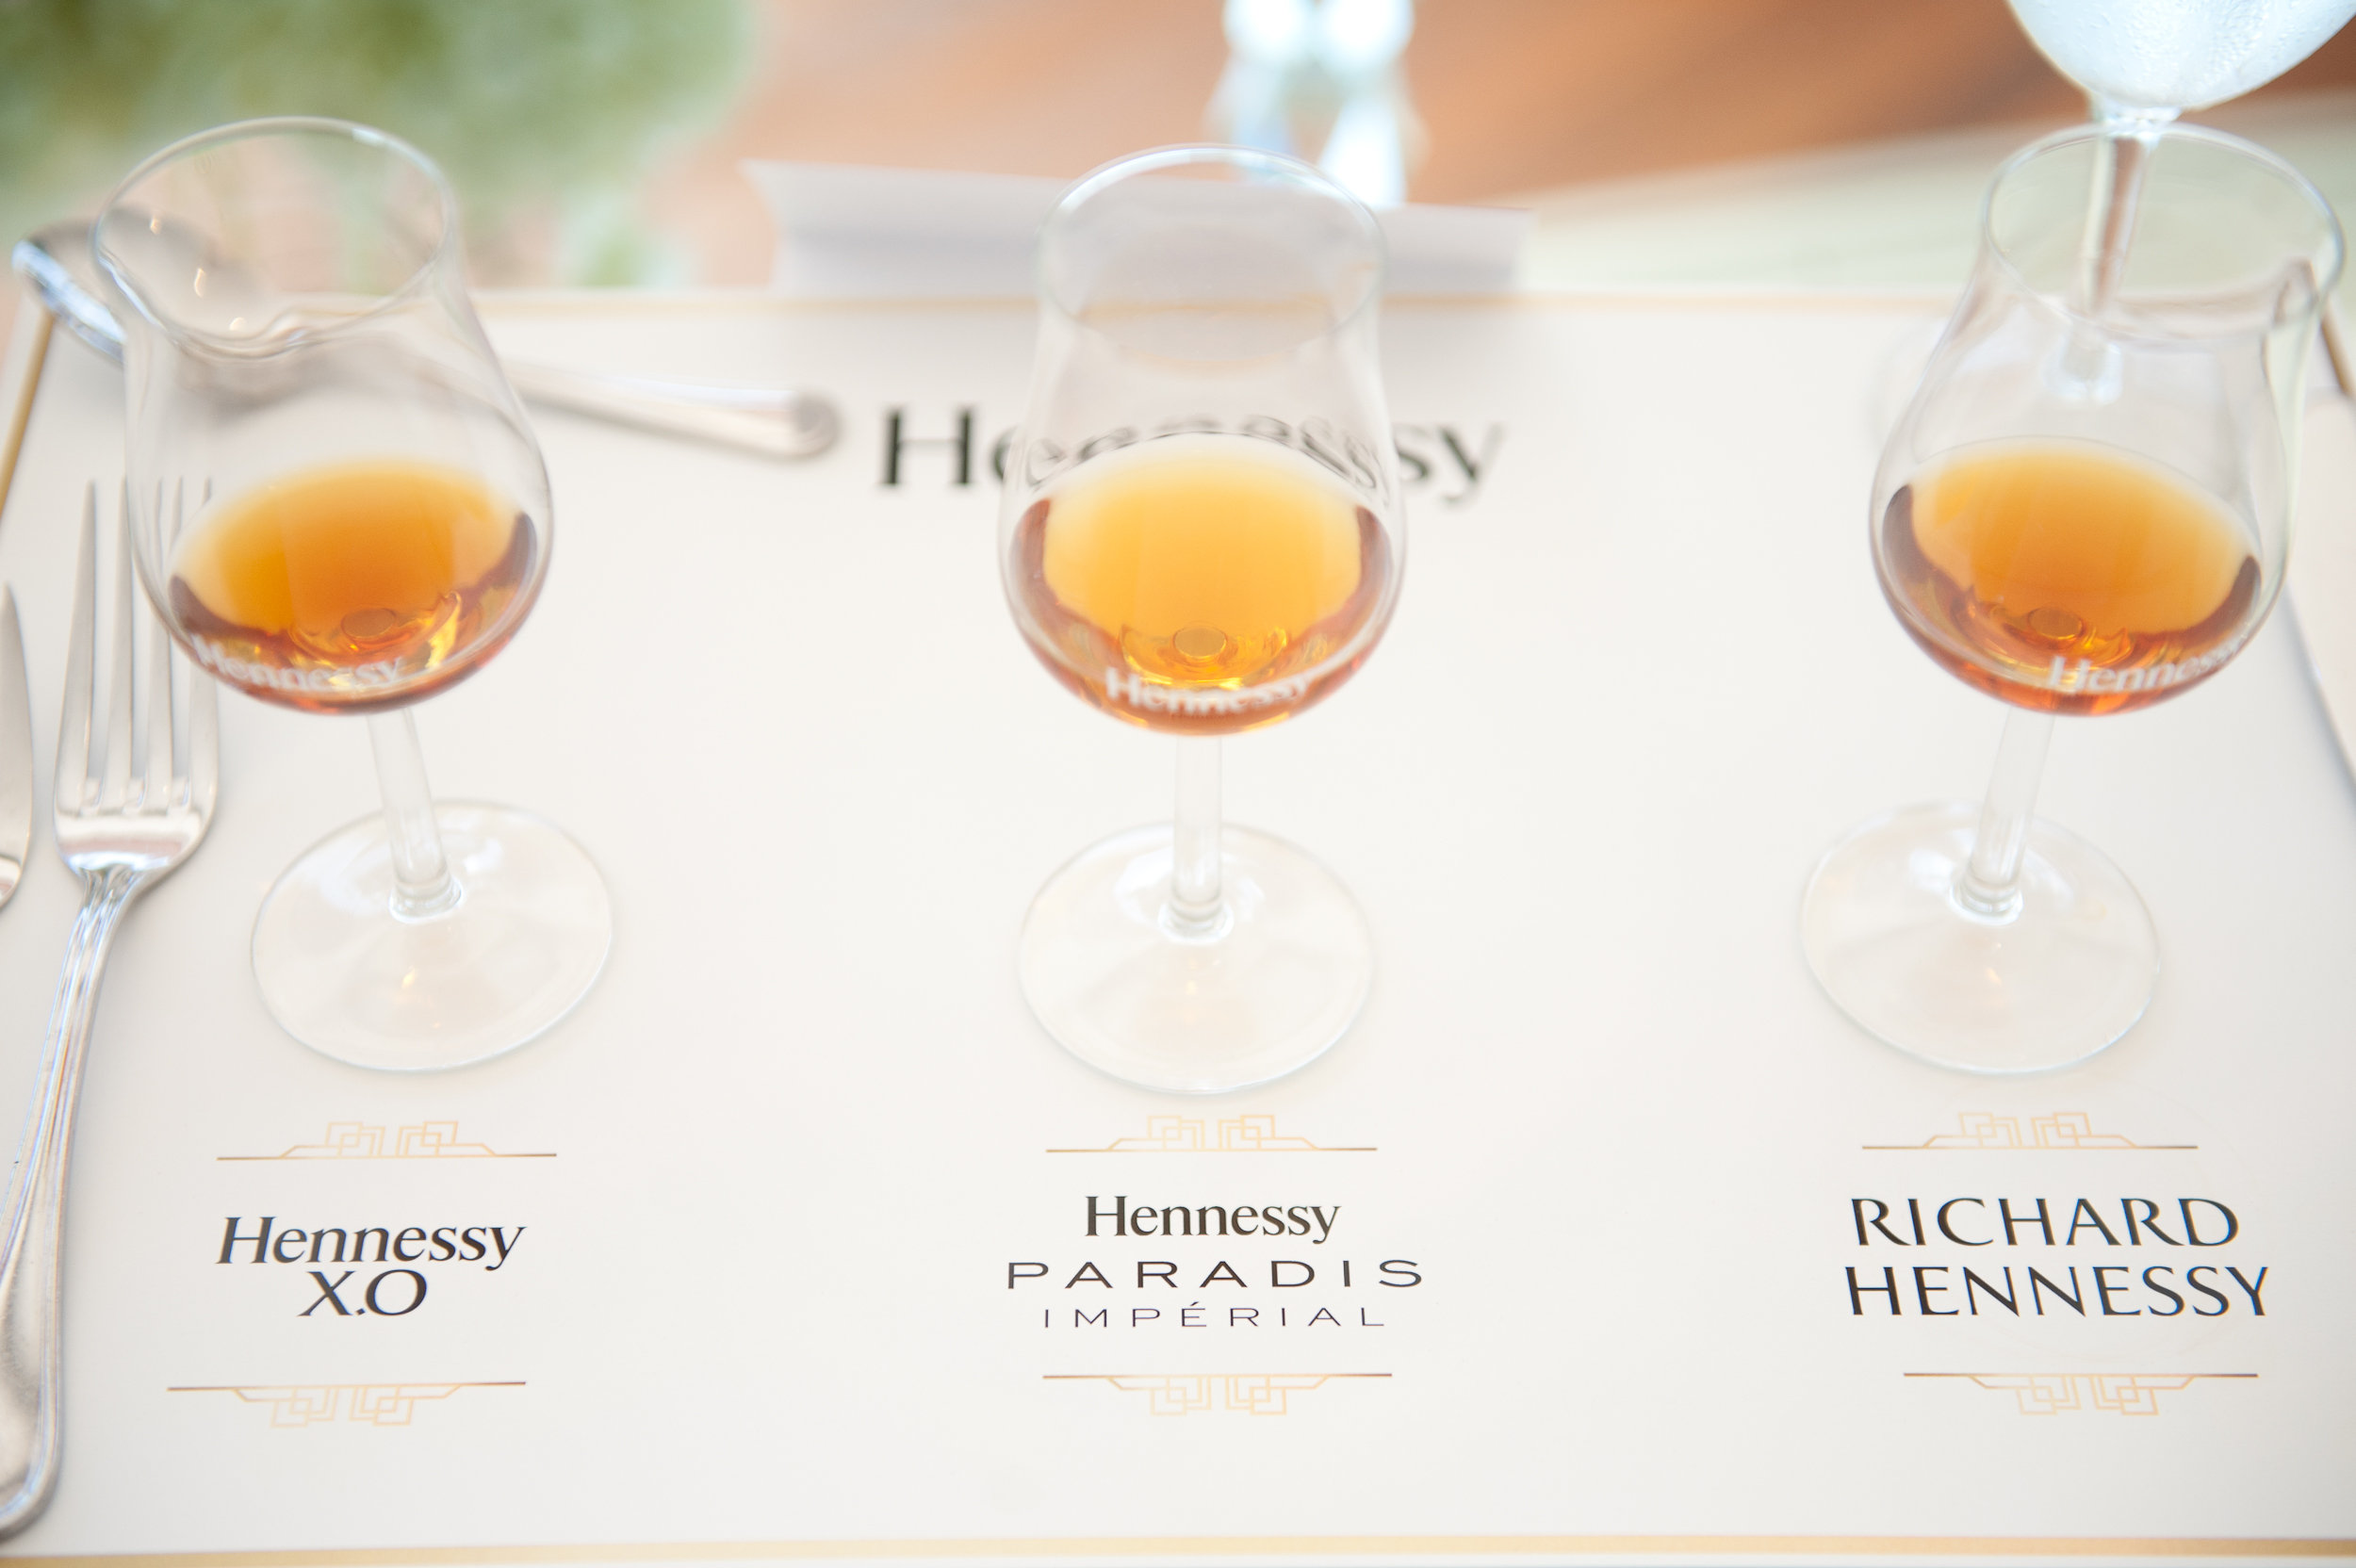 HENNESSY LUNCHEON 10 21 14-HENNESSY LUNCHEON 10 21 14-0016.jpg